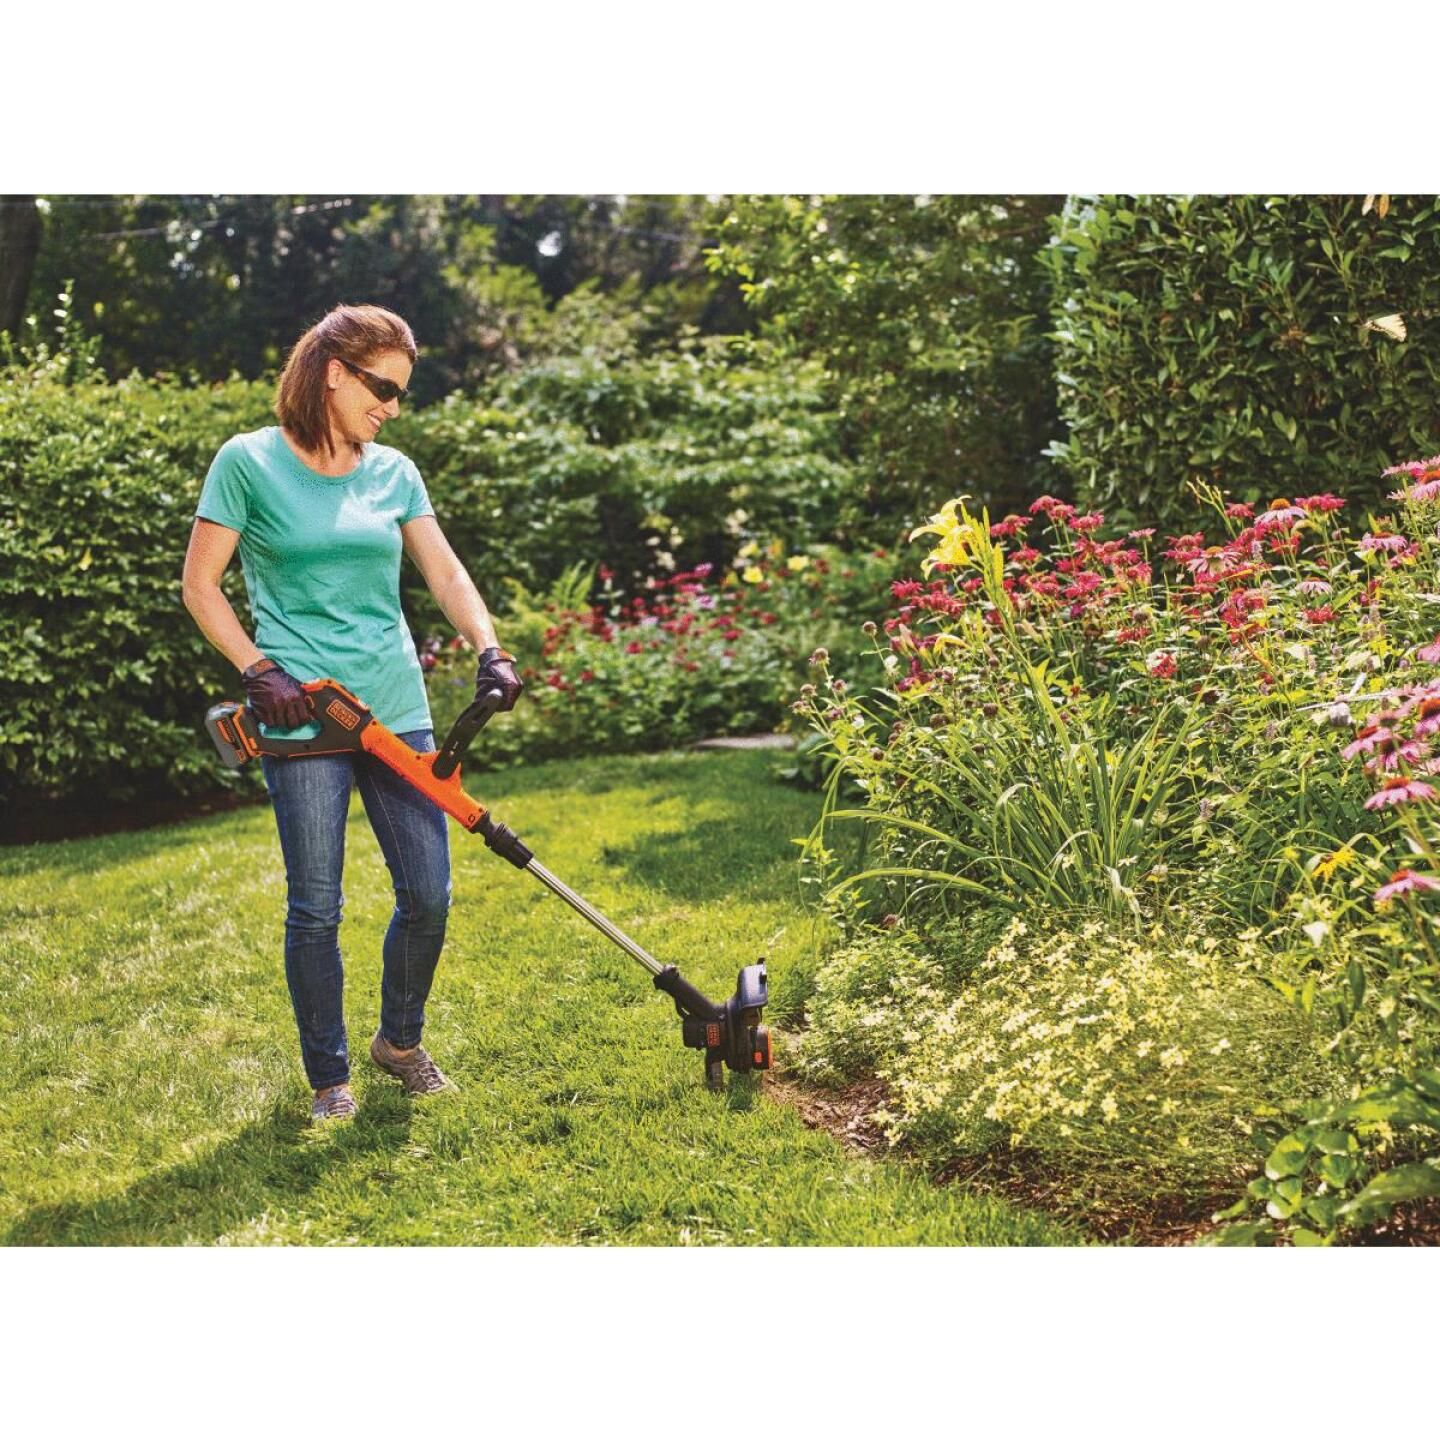 Black & Decker EasyFeed 20V MAX 12 In. Lithium Ion Straight Cordless String Trimmer/Edger Image 2